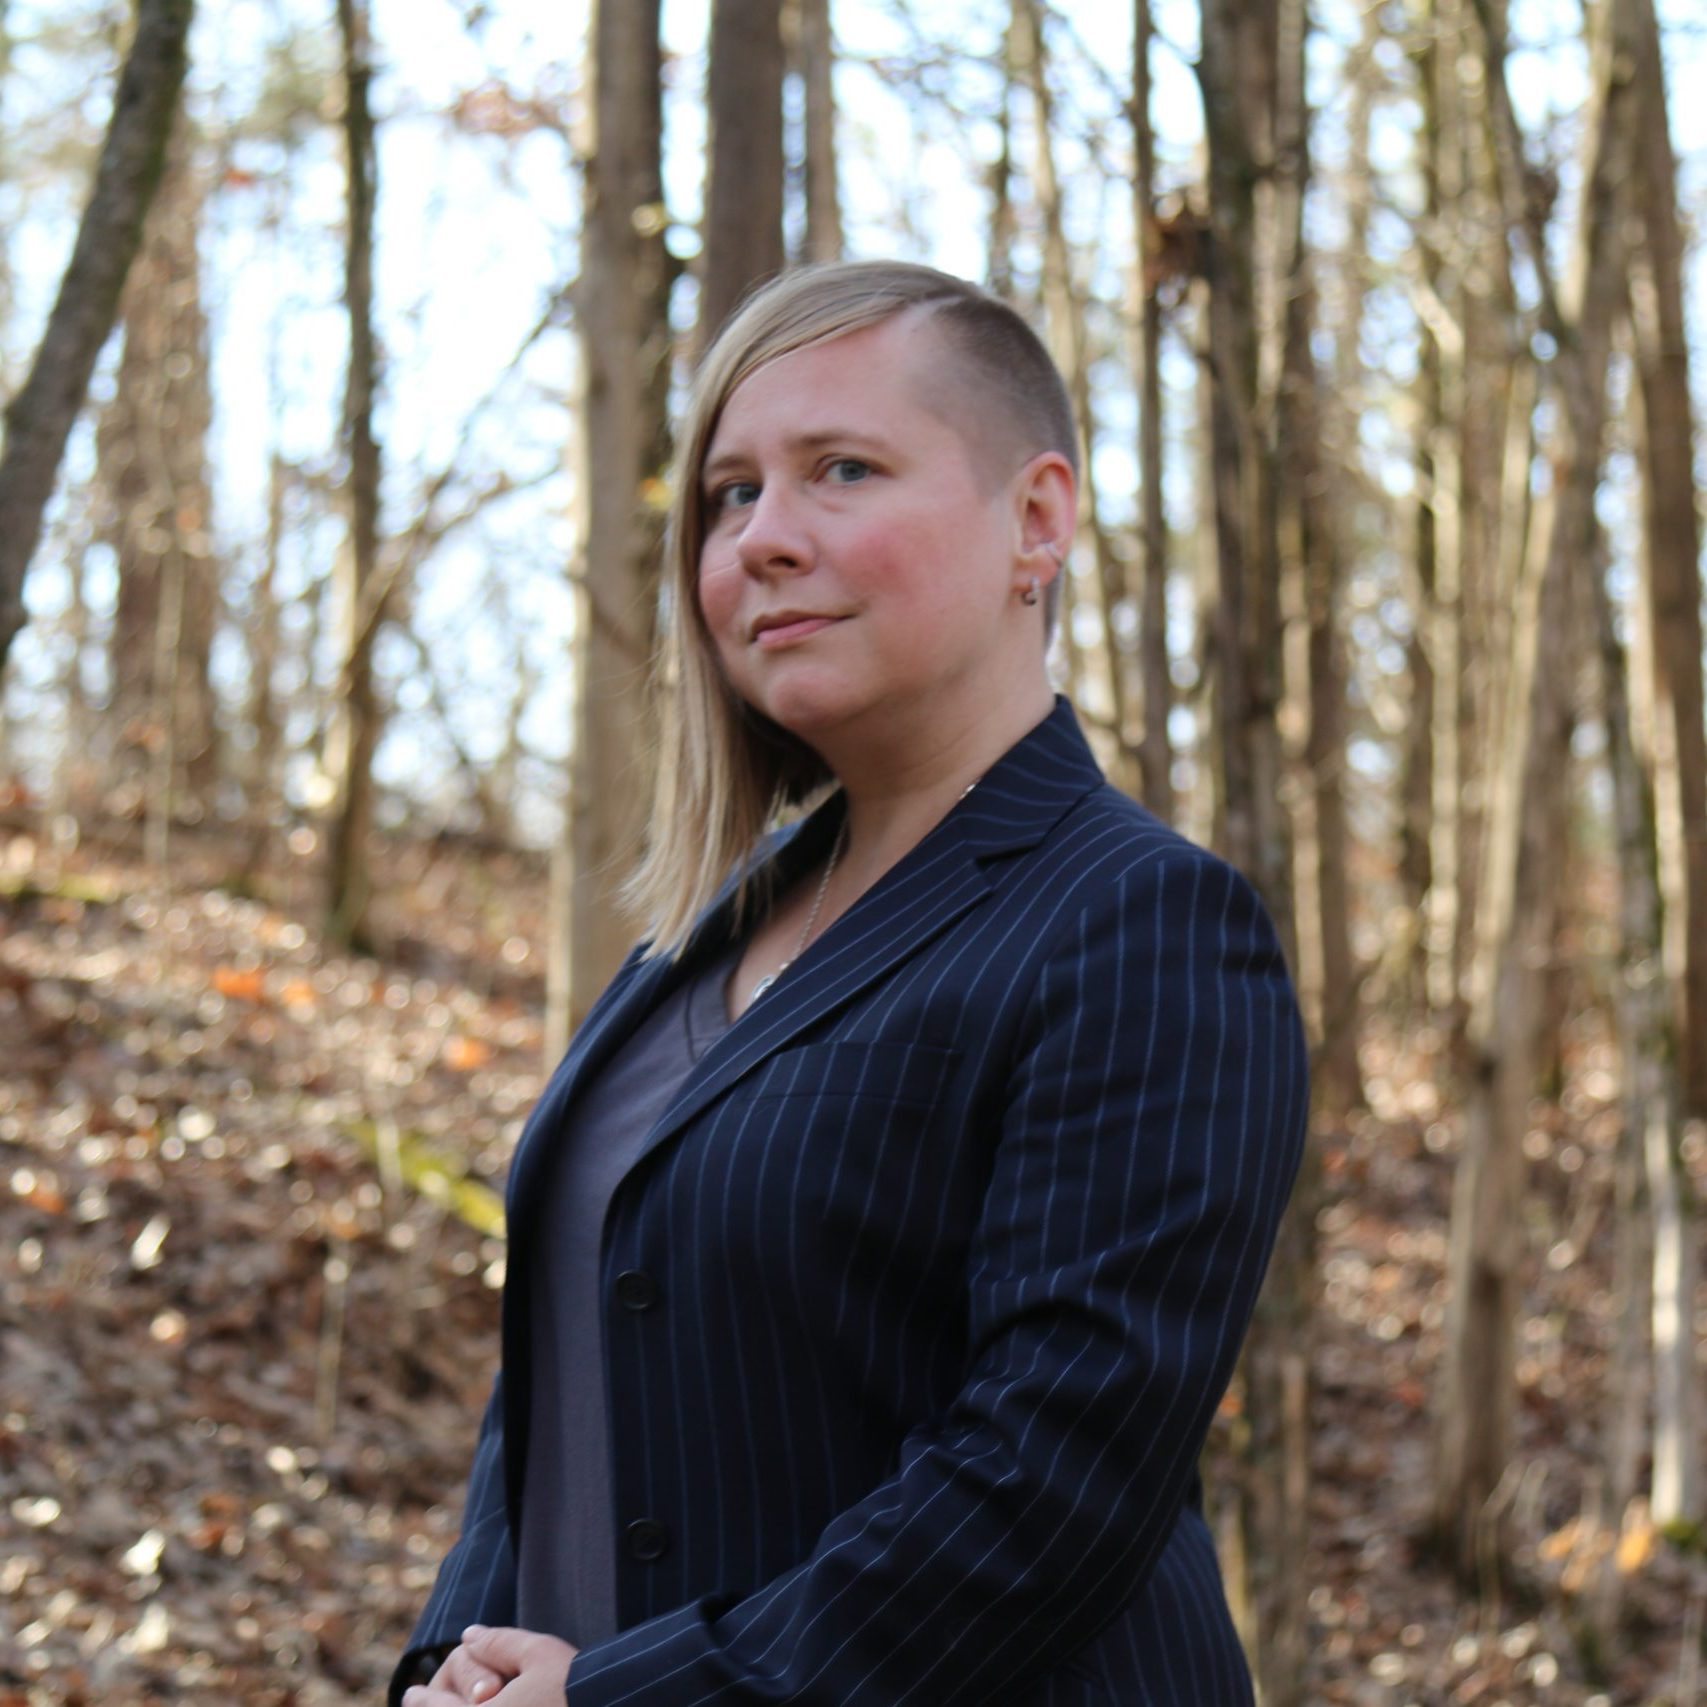 Antonia Eliason is a law professor and activist running for Congress in Mississippi.